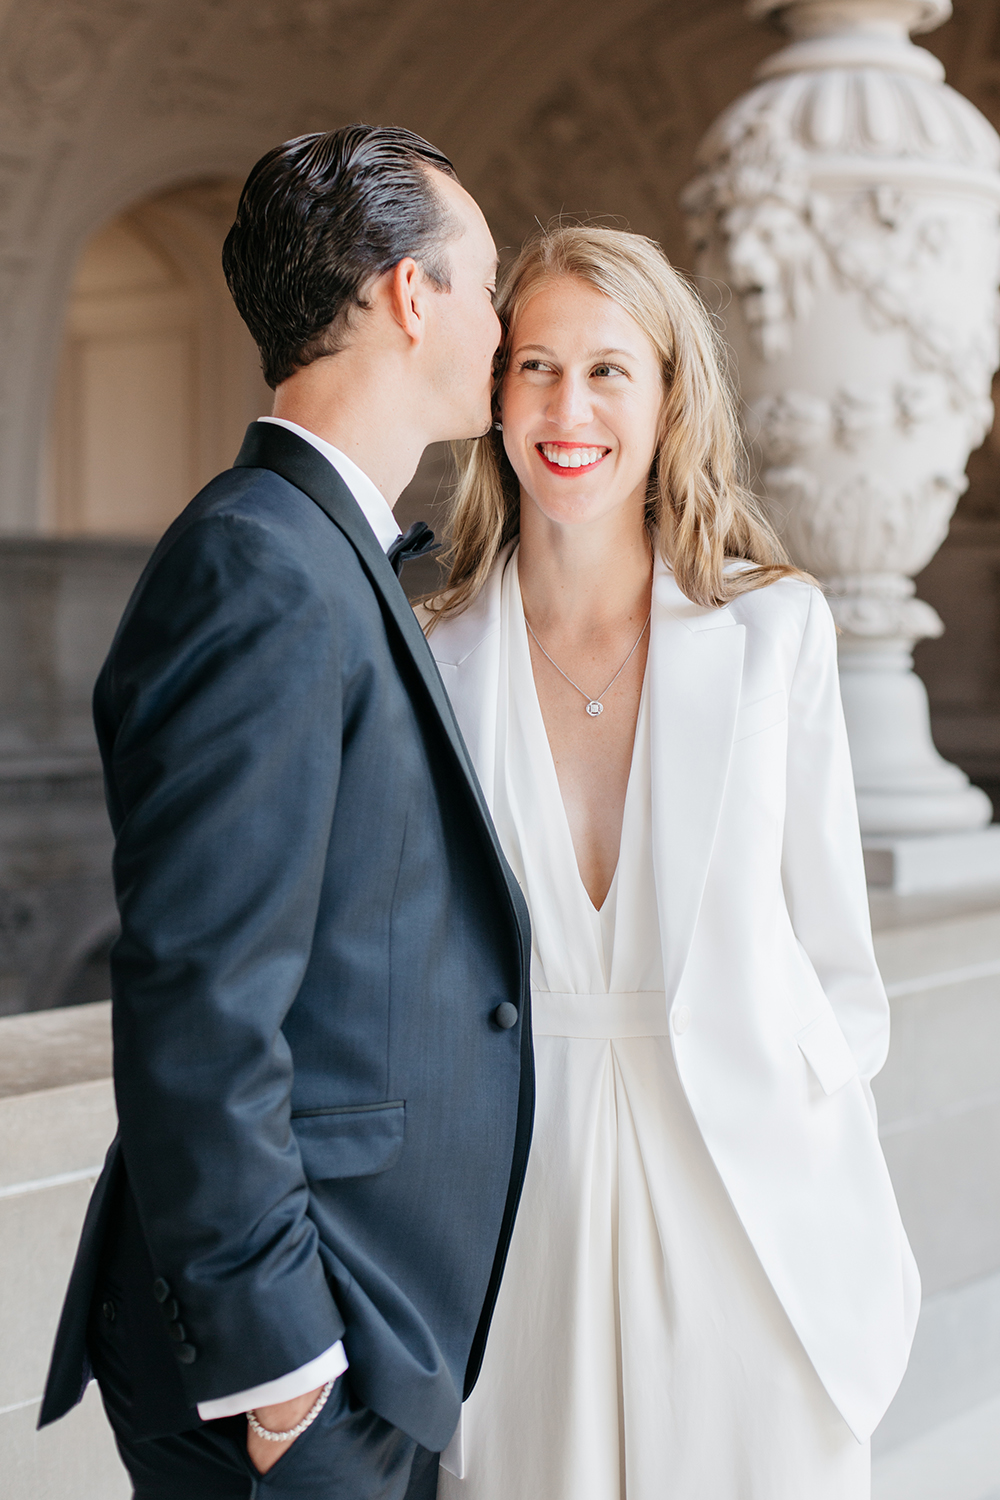 Candid portraits of bride and groom during their San Francisco City Hall wedding.